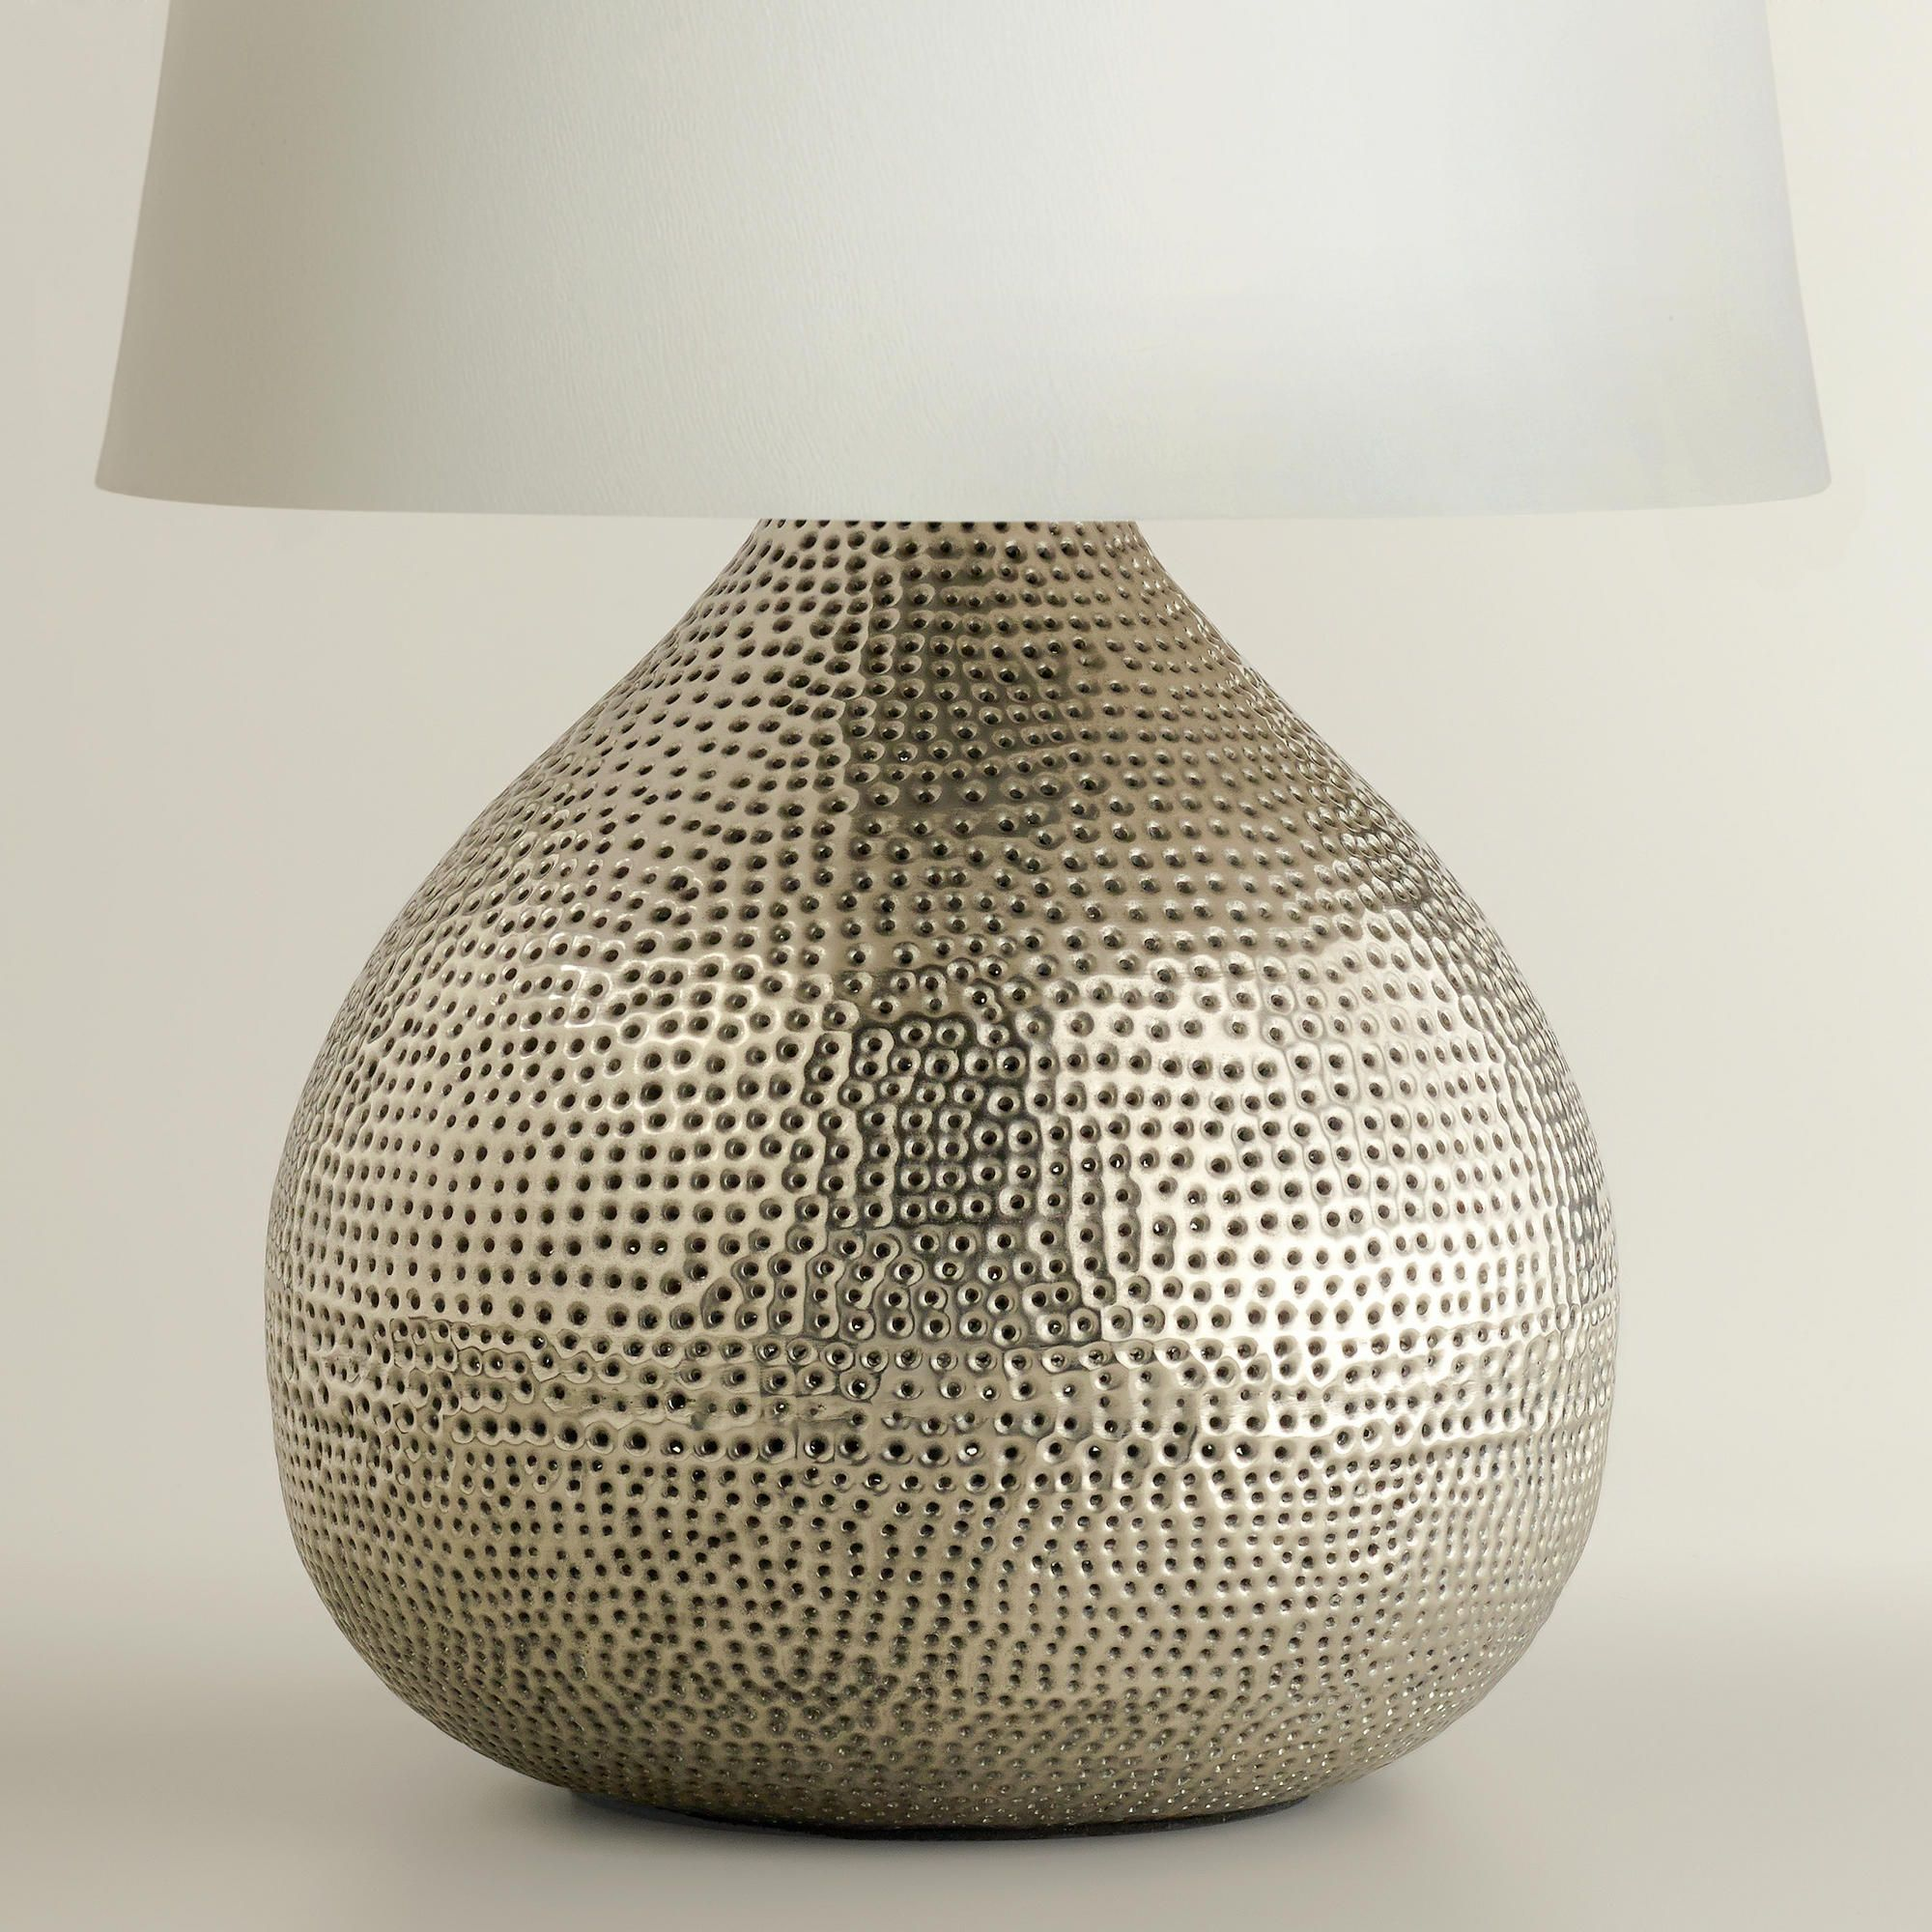 Pewter prema punched metal table lamp base world market design pewter prema punched metal table lamp base world market aloadofball Image collections